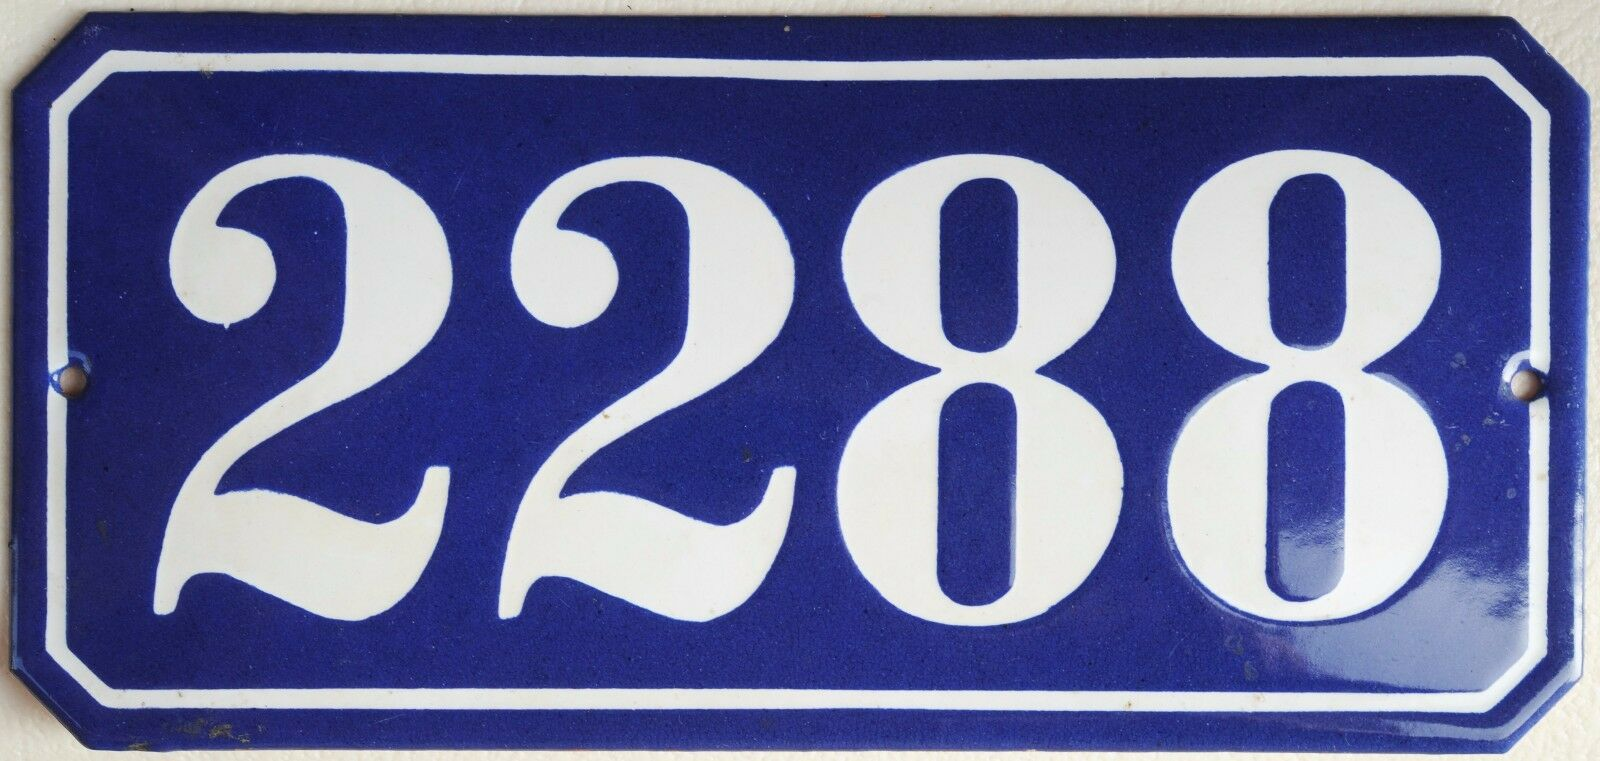 Old blue French house number 2288 door gate plate wall plaque enamel metal sign